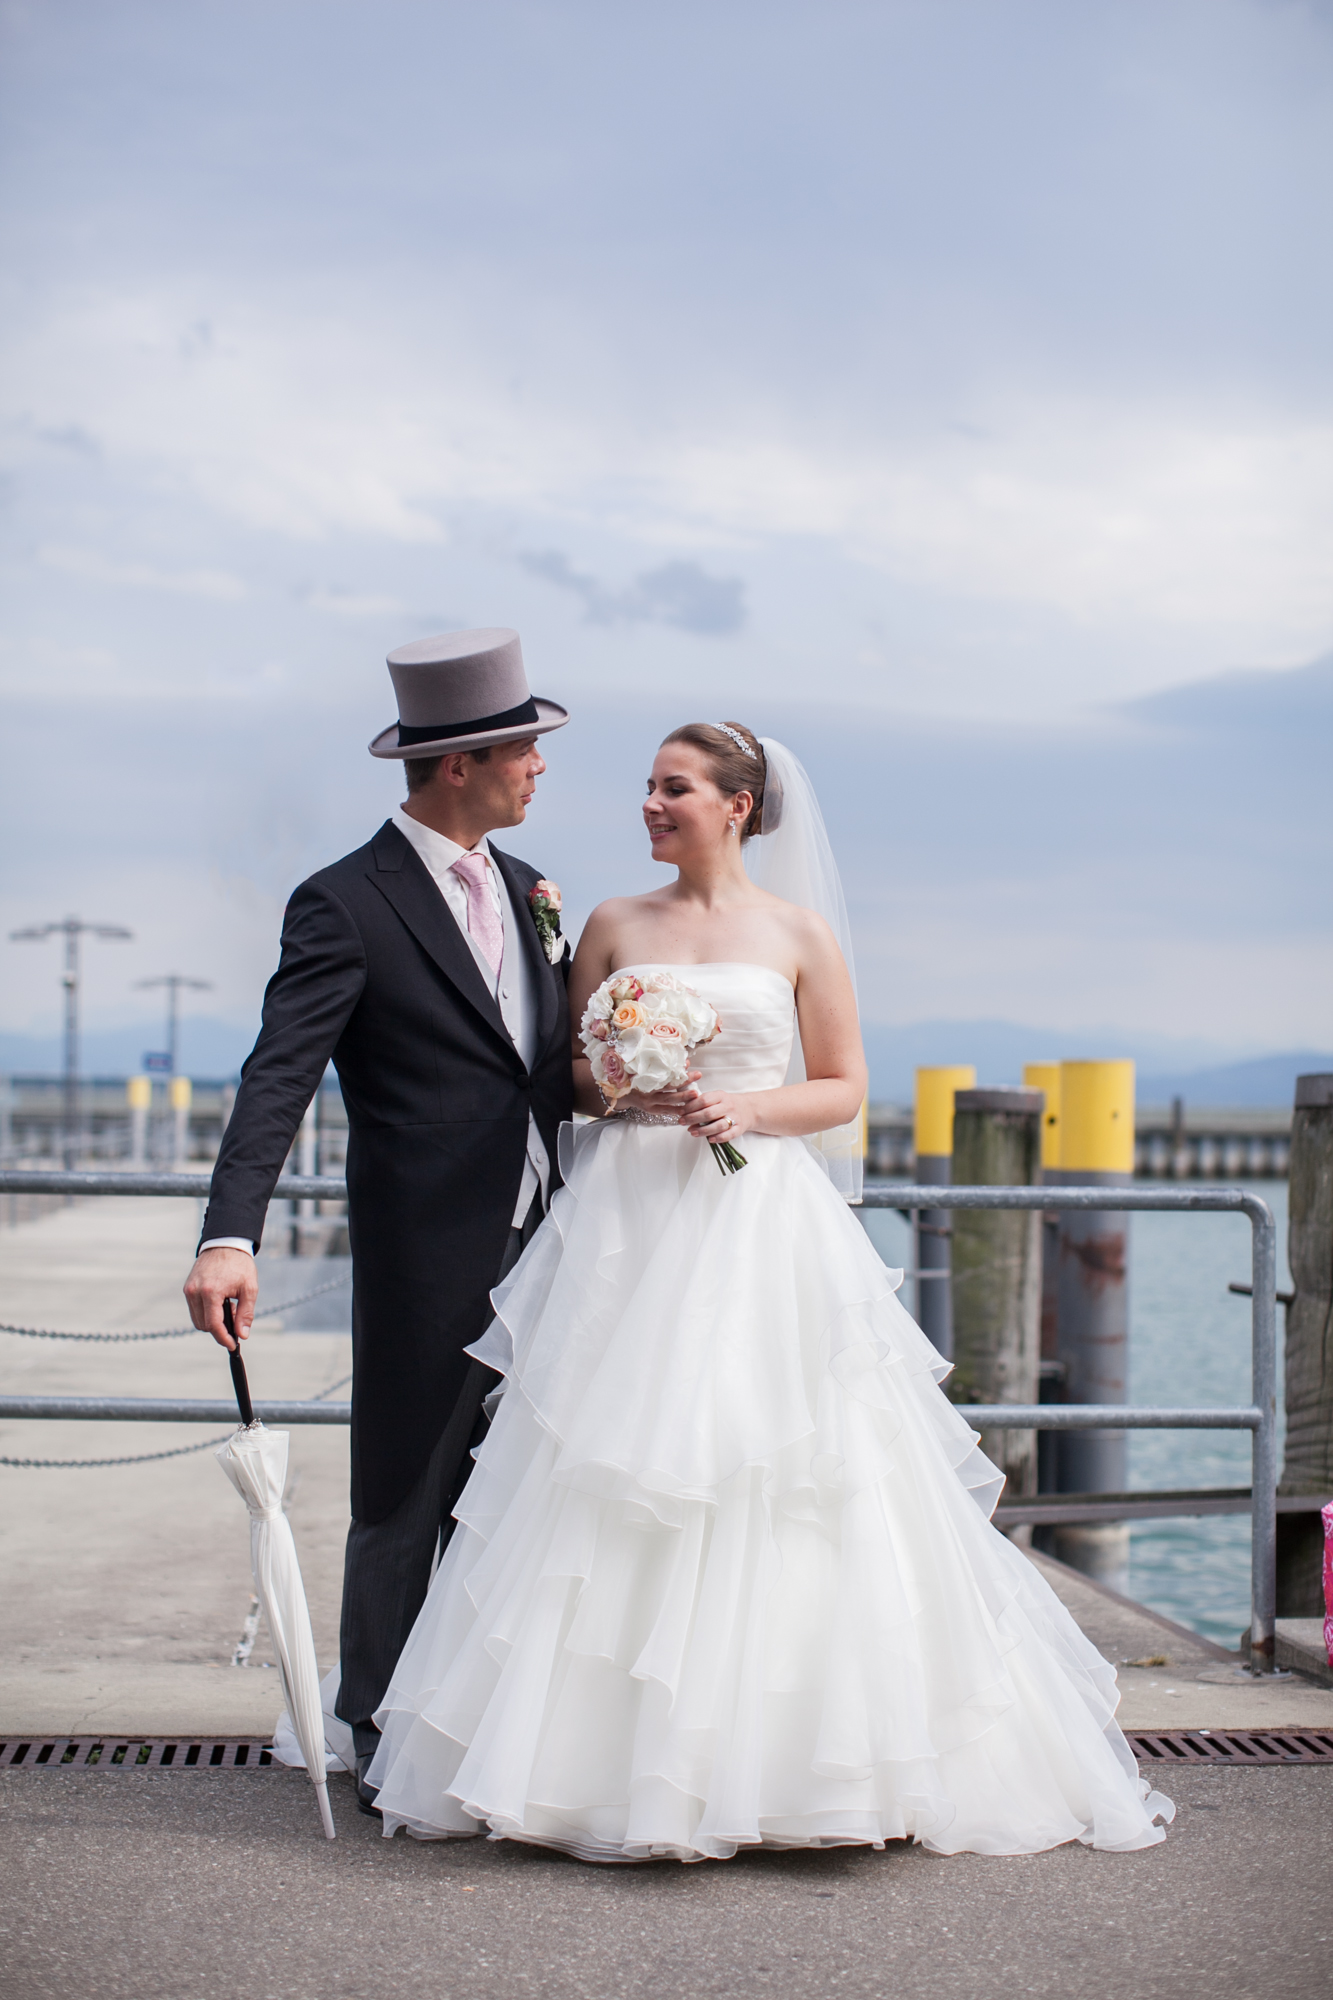 Fotograf Konstanz - Hochzeit Raphaela Phillip 064 - Wedding Story from Raphaela and Phillip at Lake of Constance  - 126 -